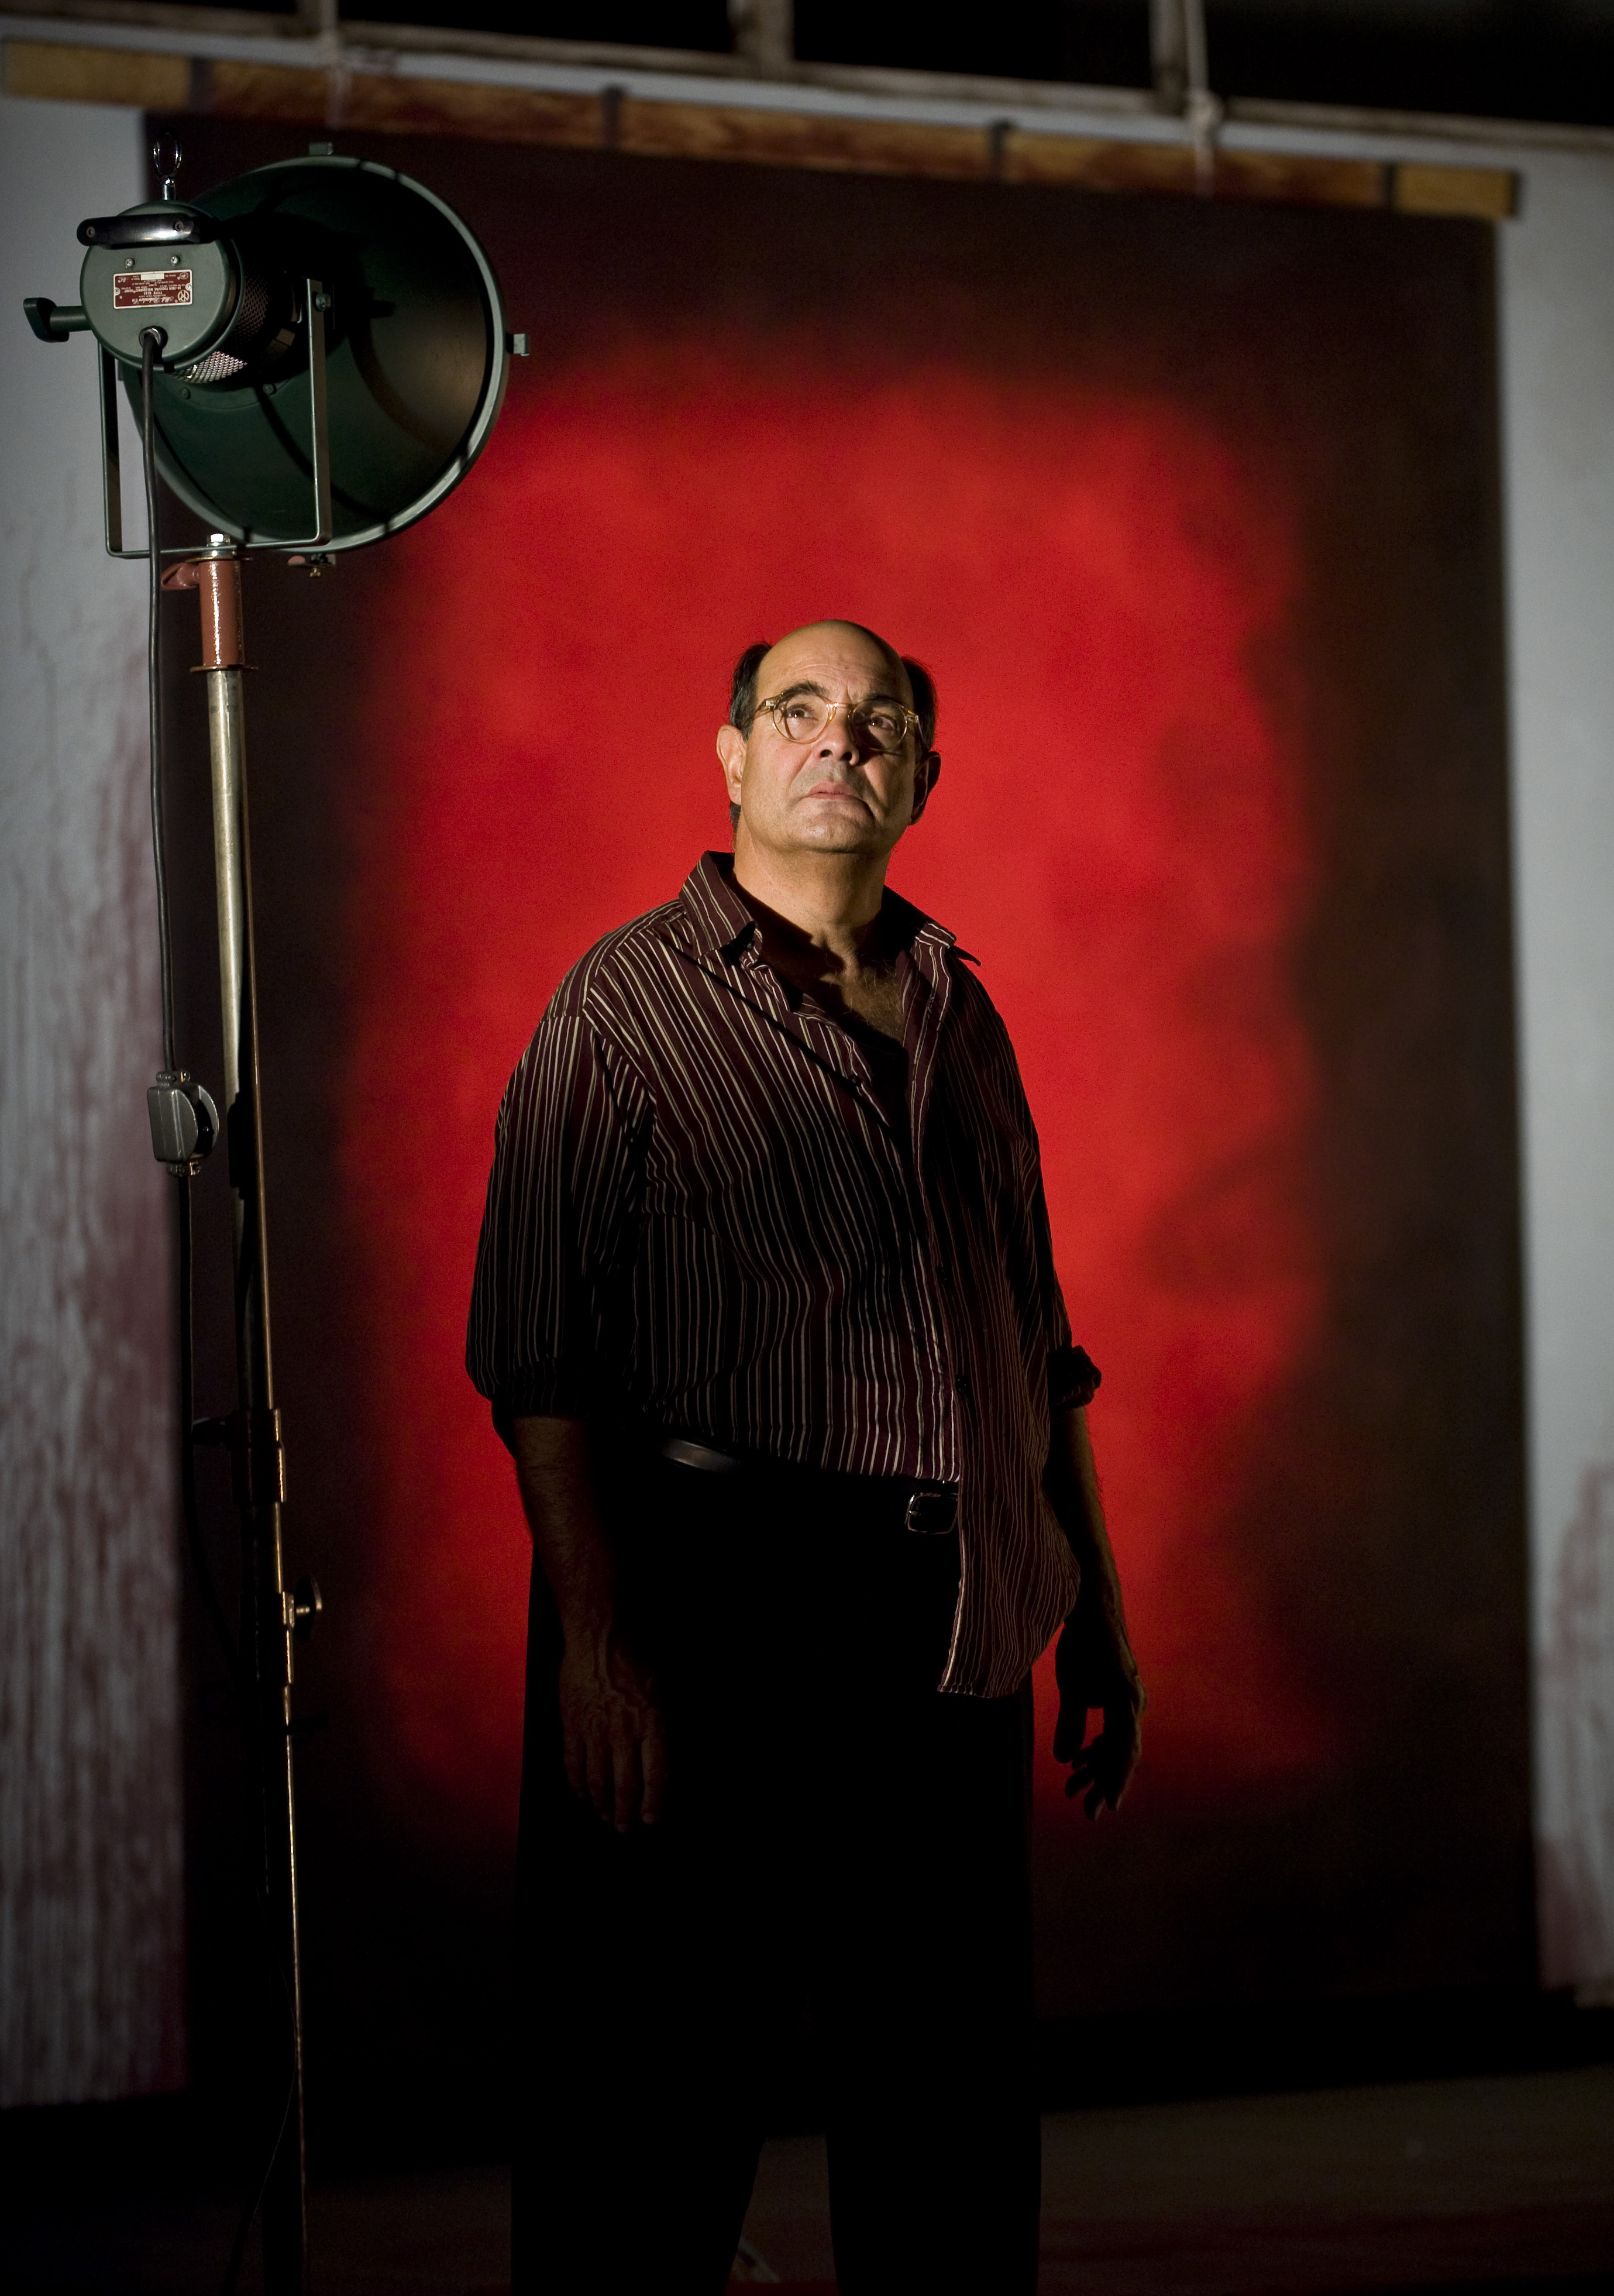 Edward Gero as Mark Rothko in the 2011 Goodman Theatre production of Red. Directed by Robert Falls. Photo by Liz Lauren.